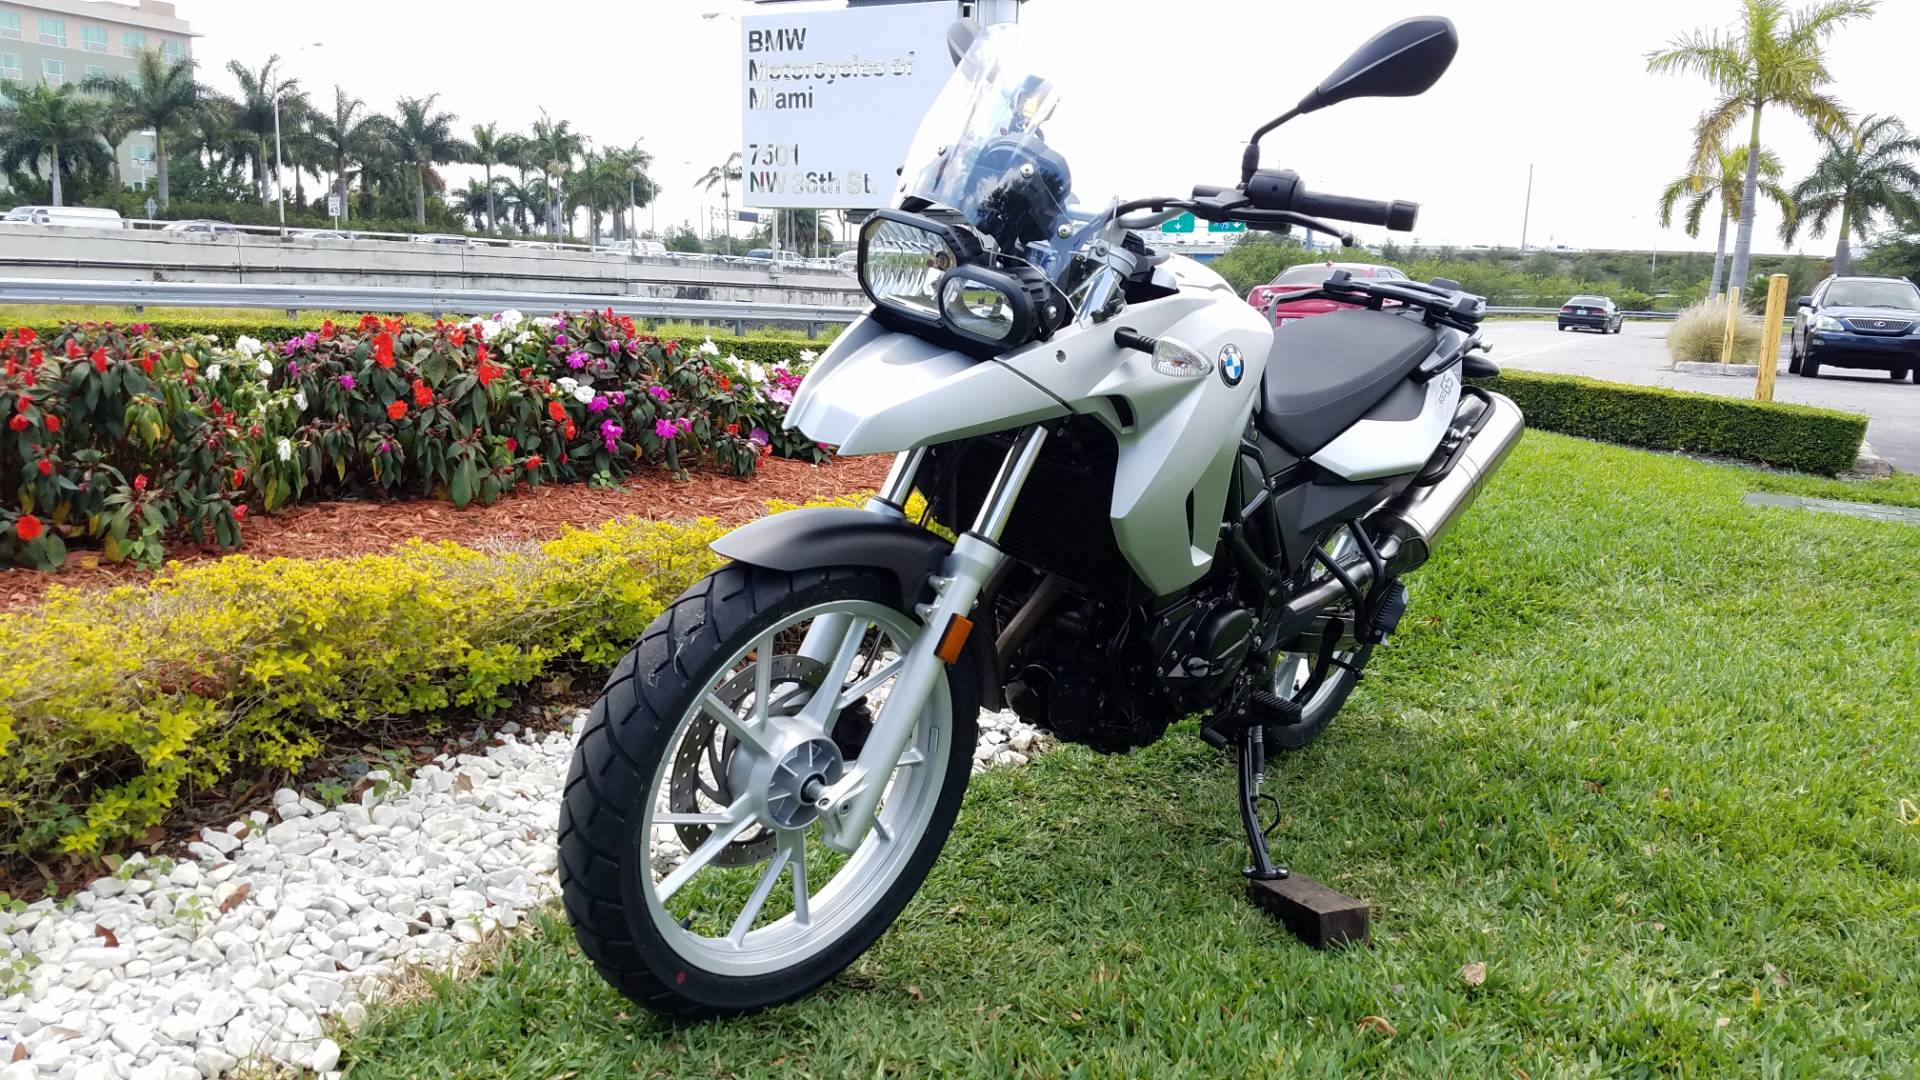 Used 2010 BMW F 650 GS For Sale, Gray F 650 GS 2010 For Sale, BMW Motorcycle F 650 GS, used BMW Motorcycle